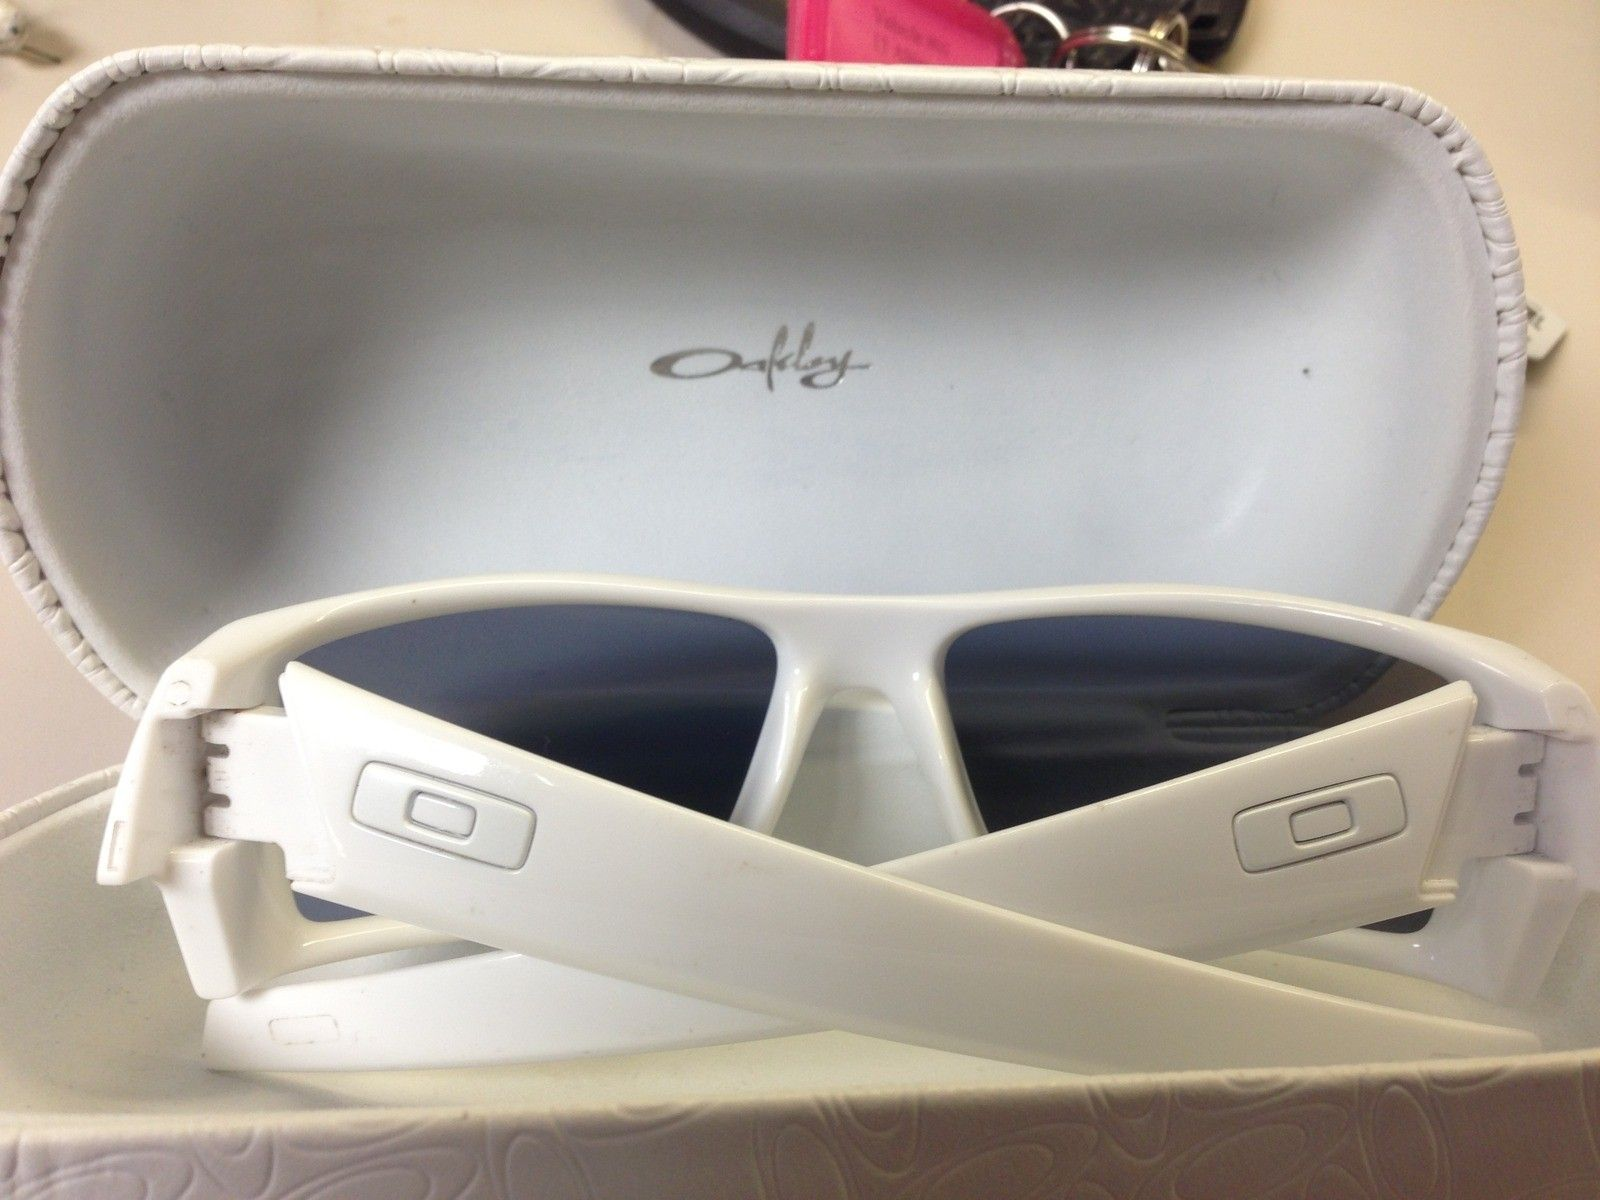 WTS: Coducts And GASCAN S Open To All Offers - oakleys007.jpg